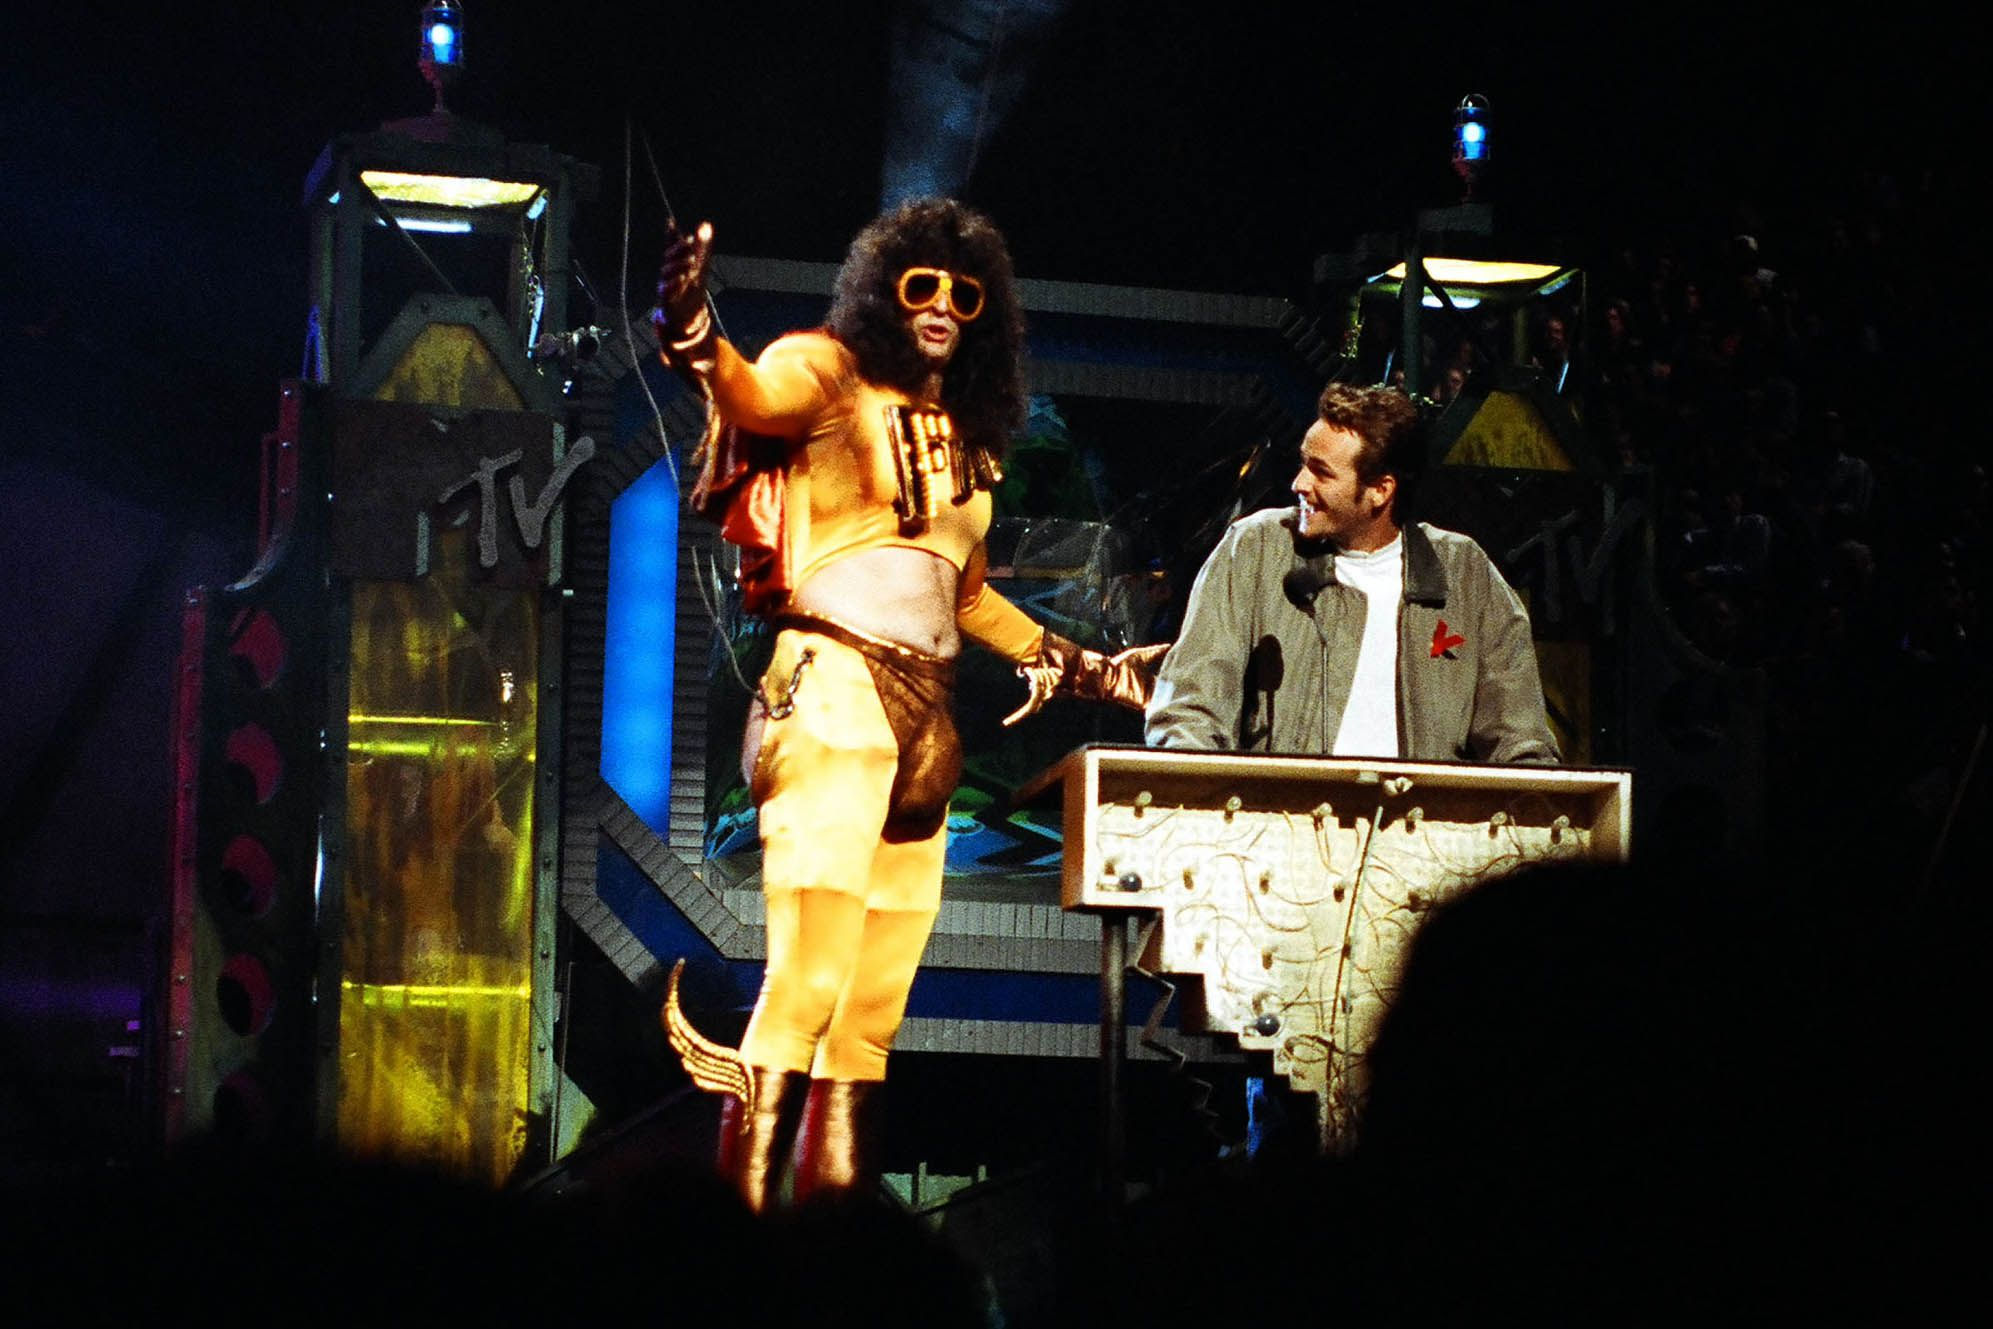 Howard Stern and Perry on stage during the 1992 MTV Video Music Awards in Los Angeles.